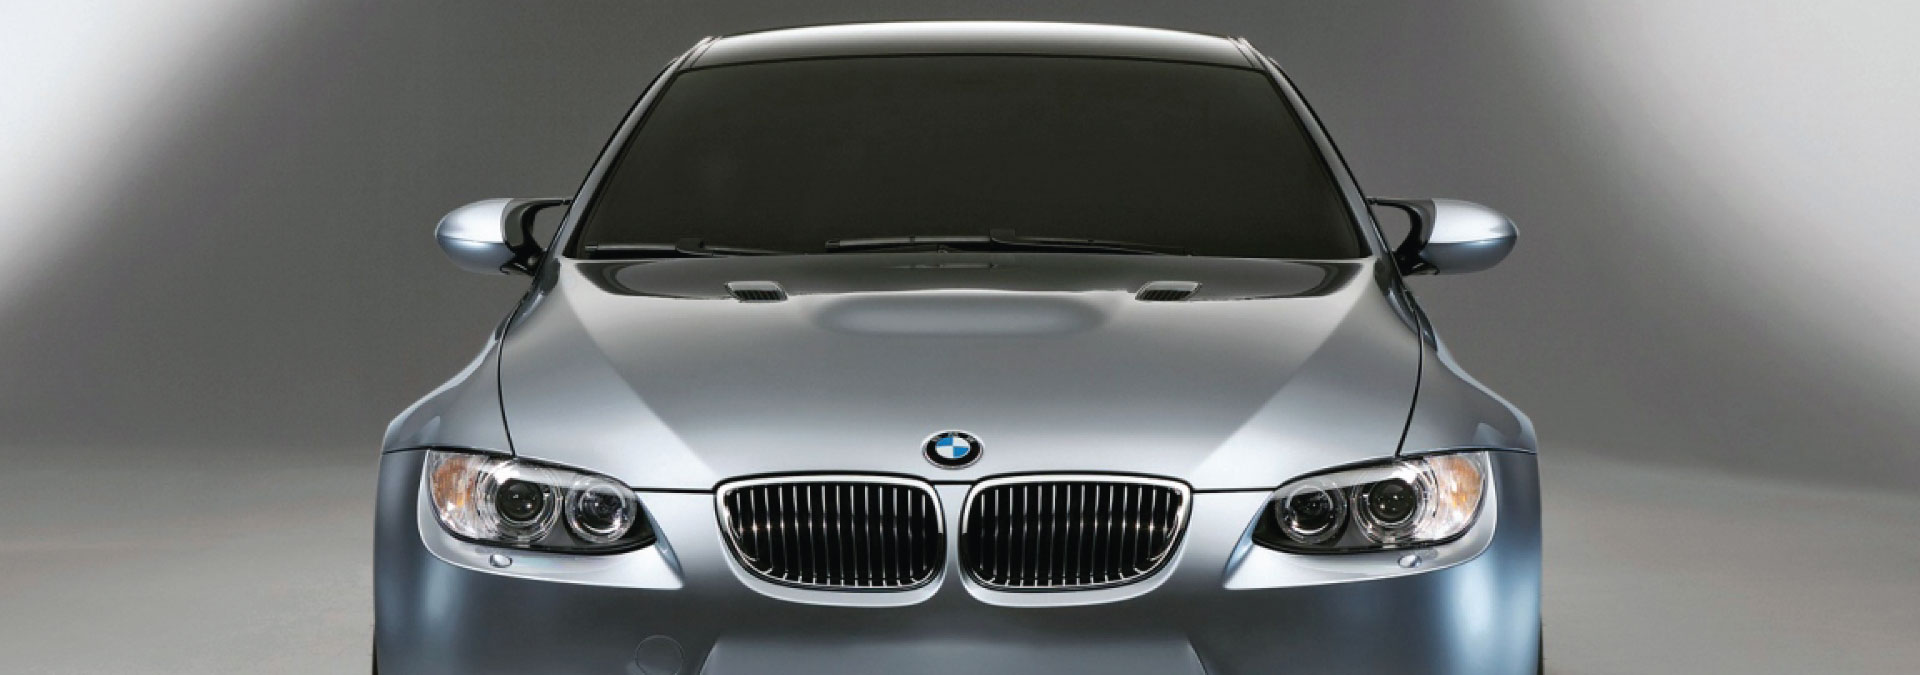 BMW tuning, for all models in need of tuning services